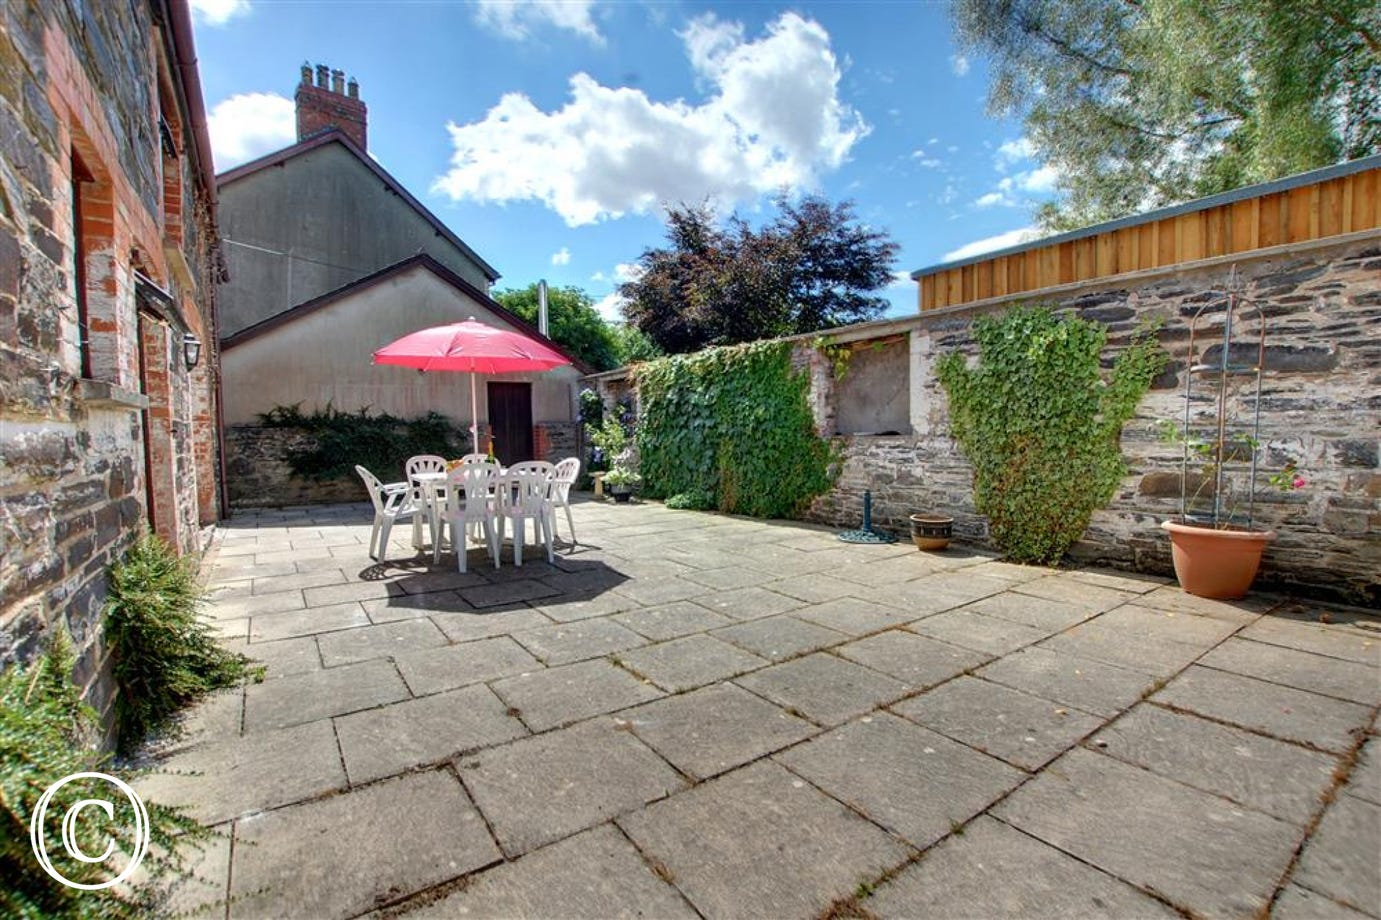 Large and fully enclosed sun trap courtyard ideal for relaxation and al fresco dining